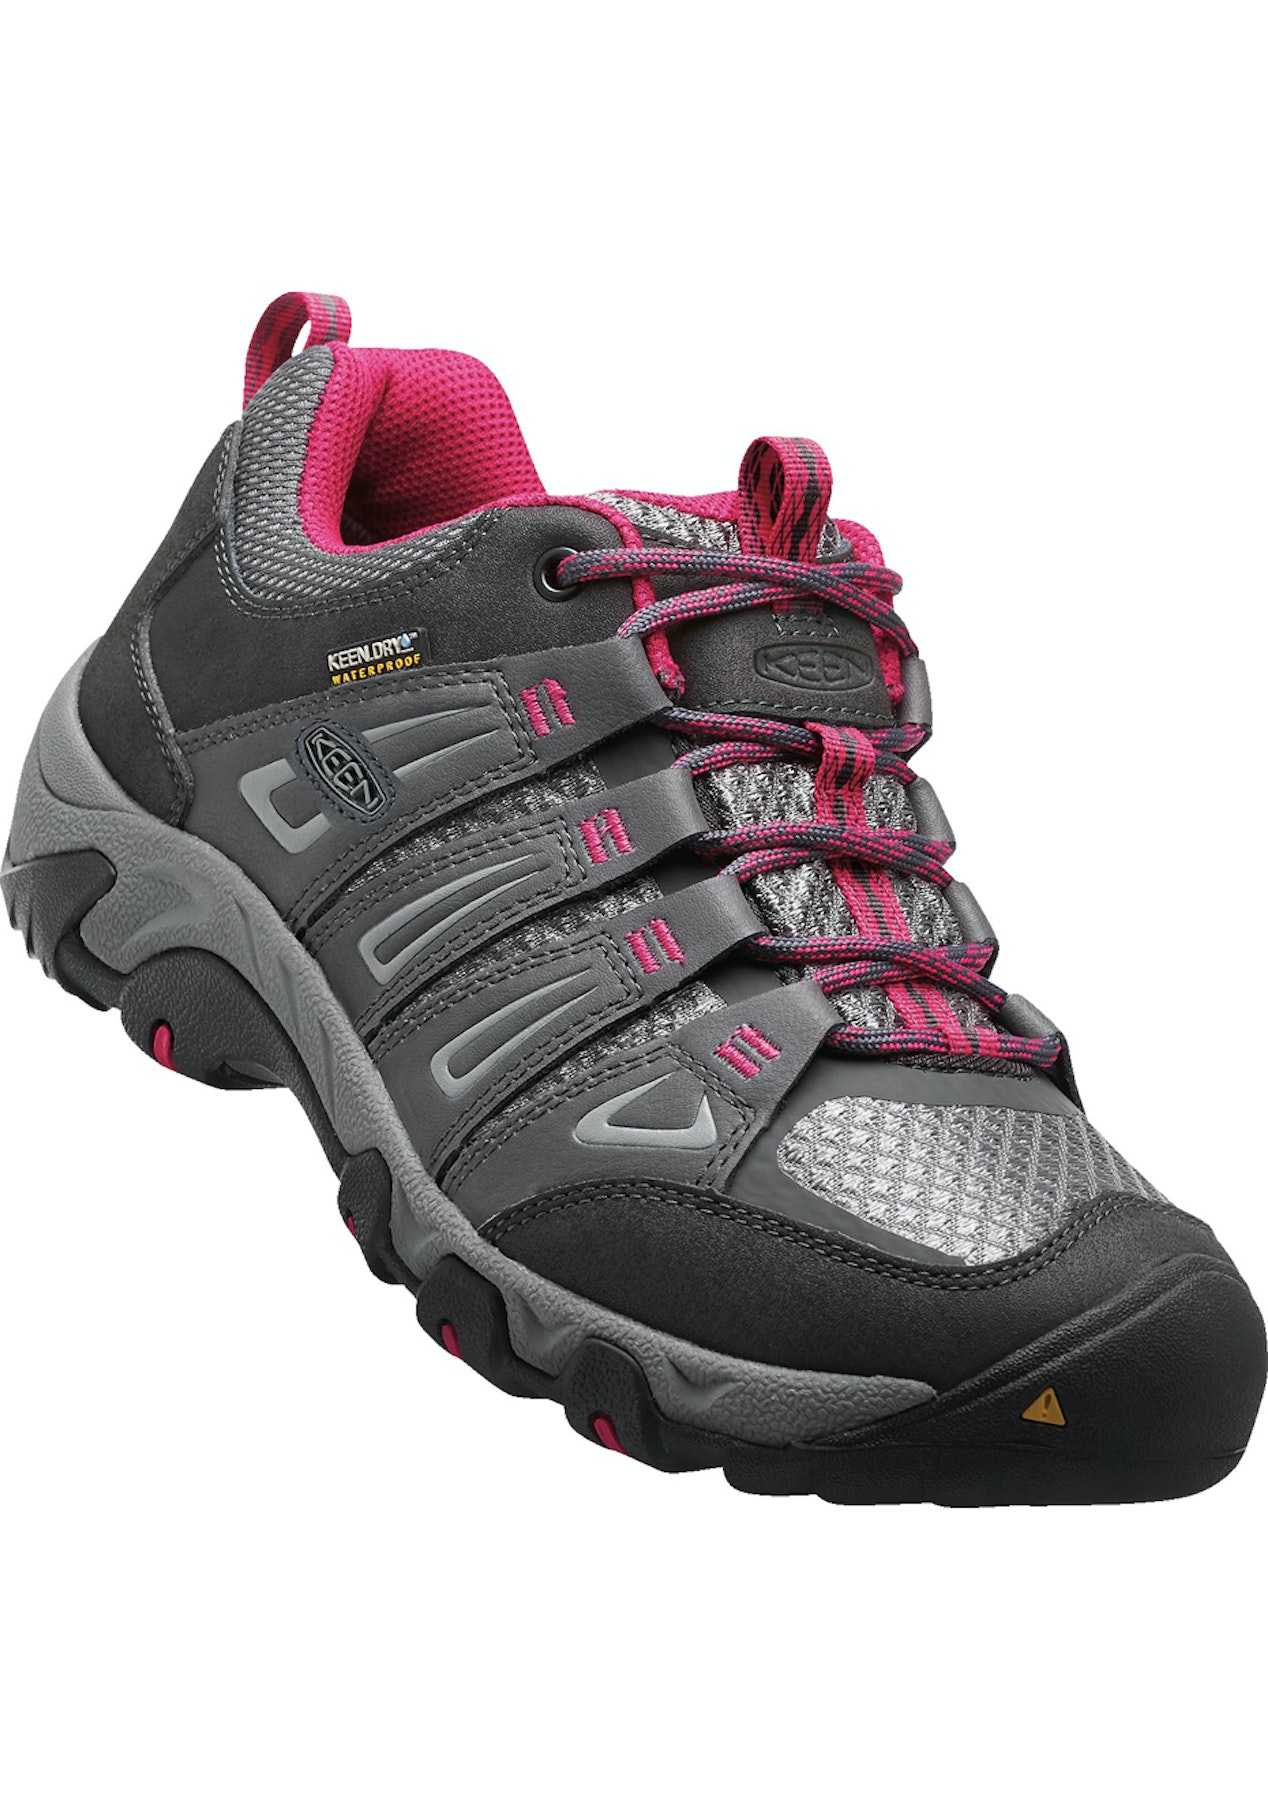 0f932c797997 Keen - Womens Oakridge WP - Magnet Rose - Under Armour   Keen - New Styles  Added - Onceit